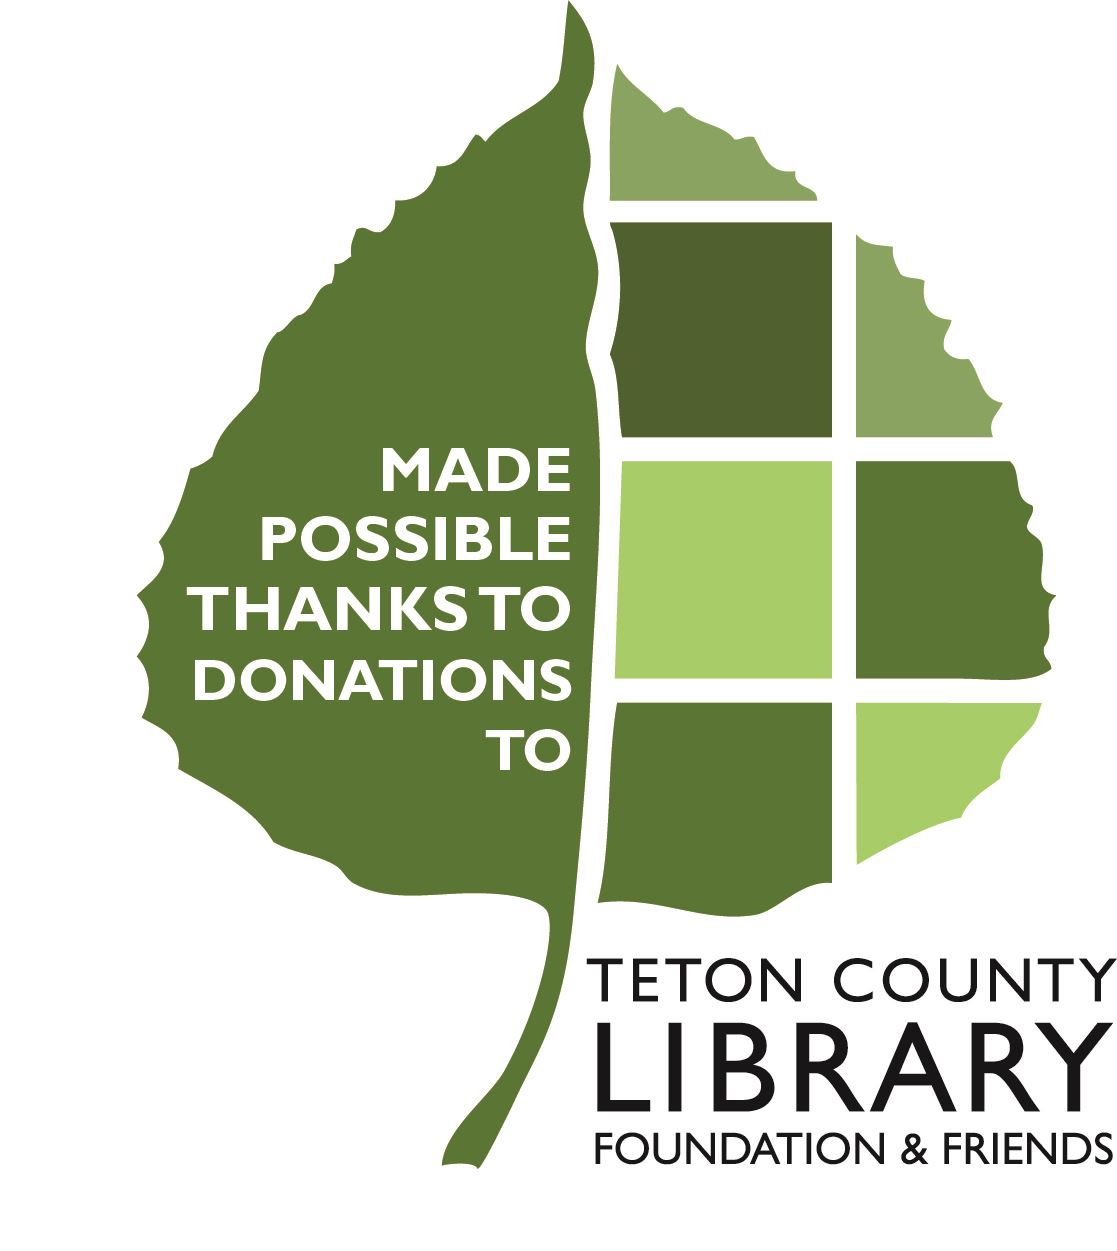 image of TCL logo with donations wording